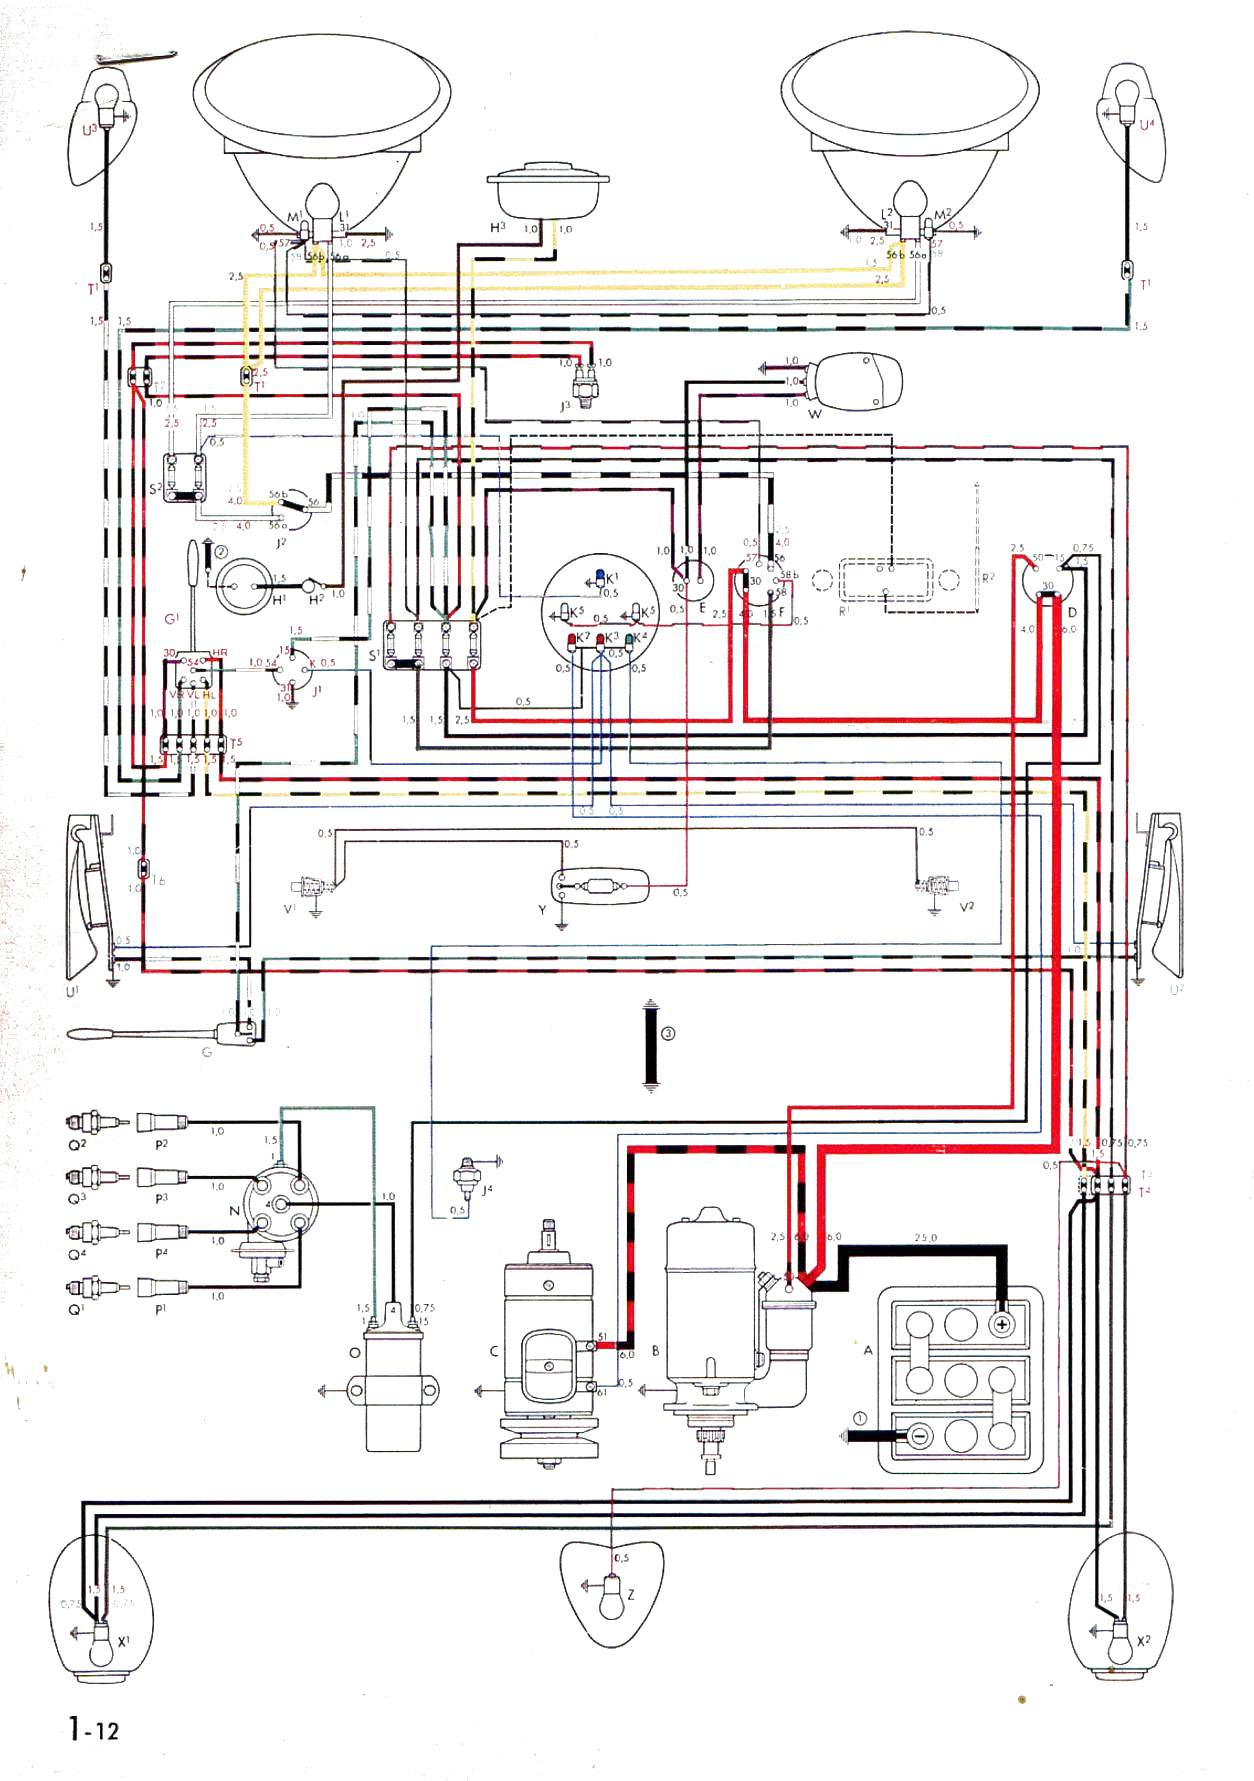 1983 vw vanagon wiring diagram wiring diagrams and schematics thesamba vanagon view topic 1 8t conversion details